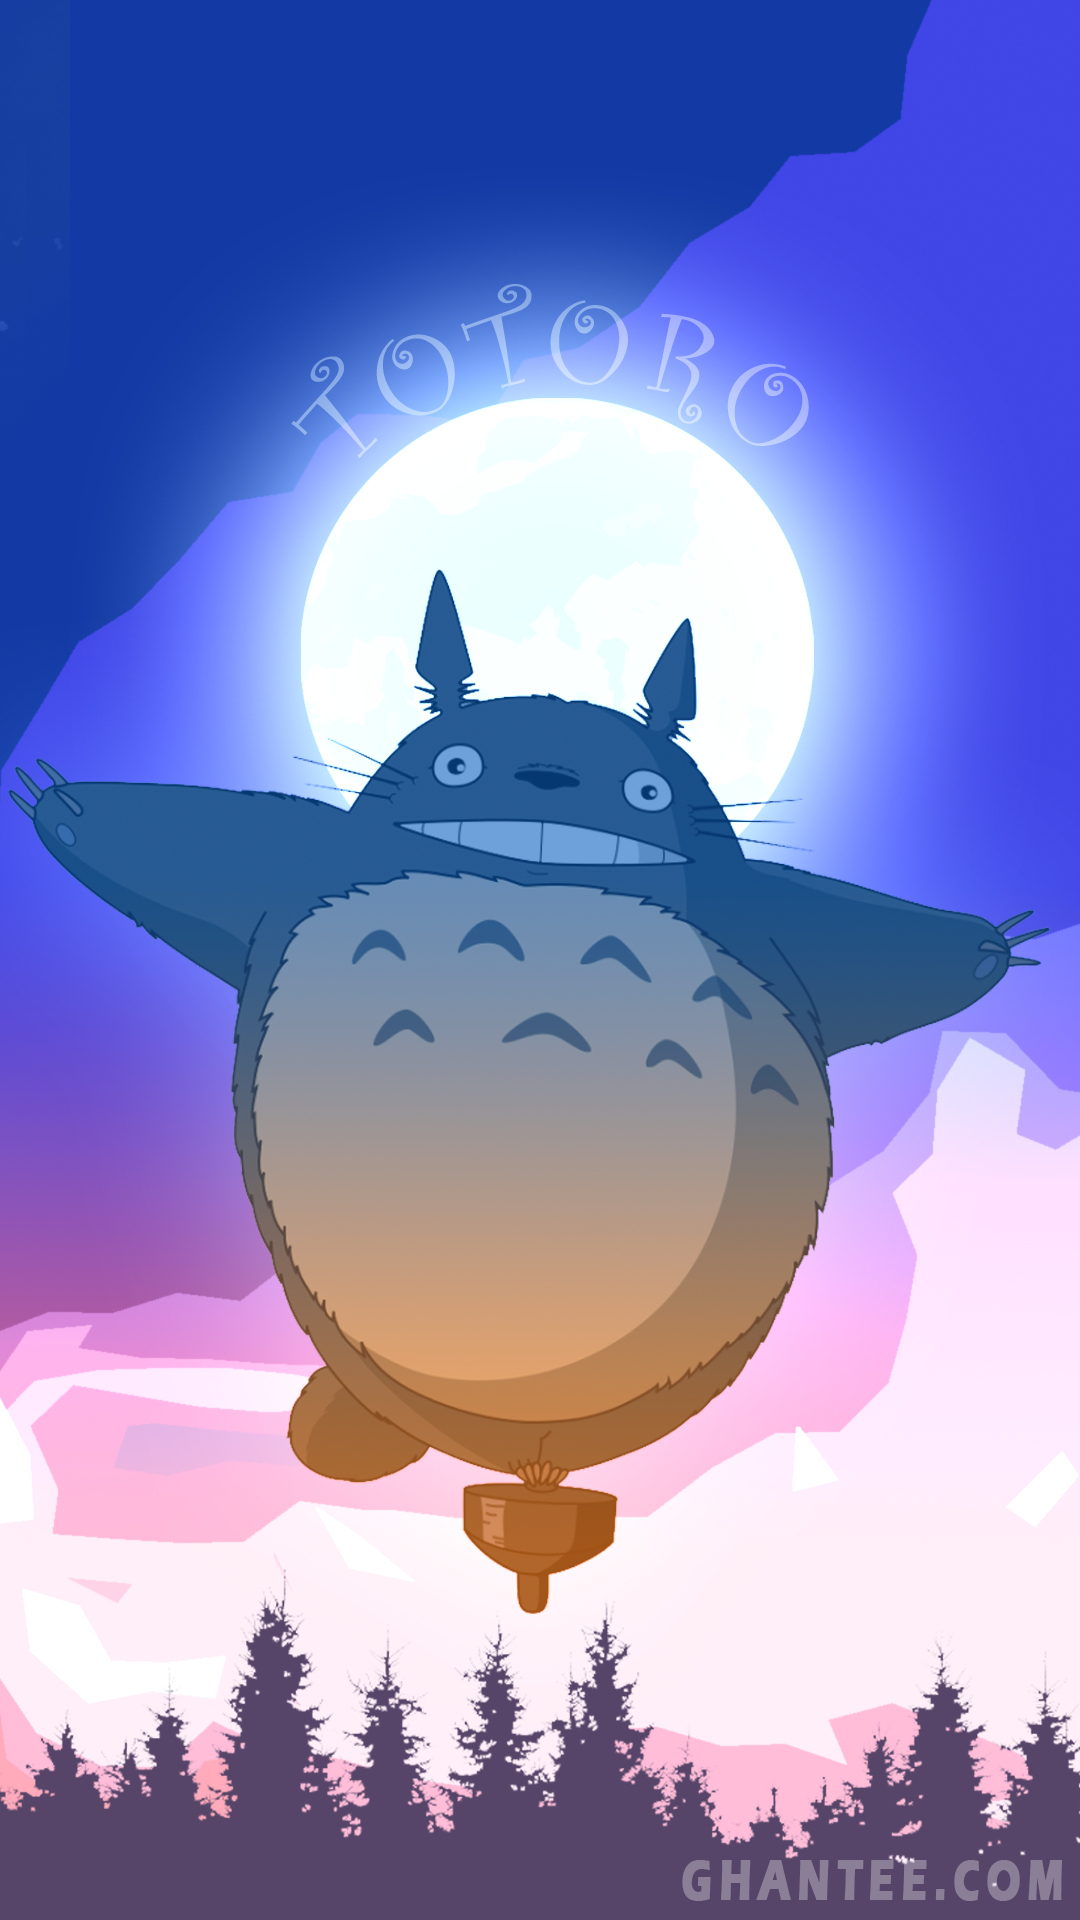 cute android wallpaper in 2020 Android wallpaper, Totoro